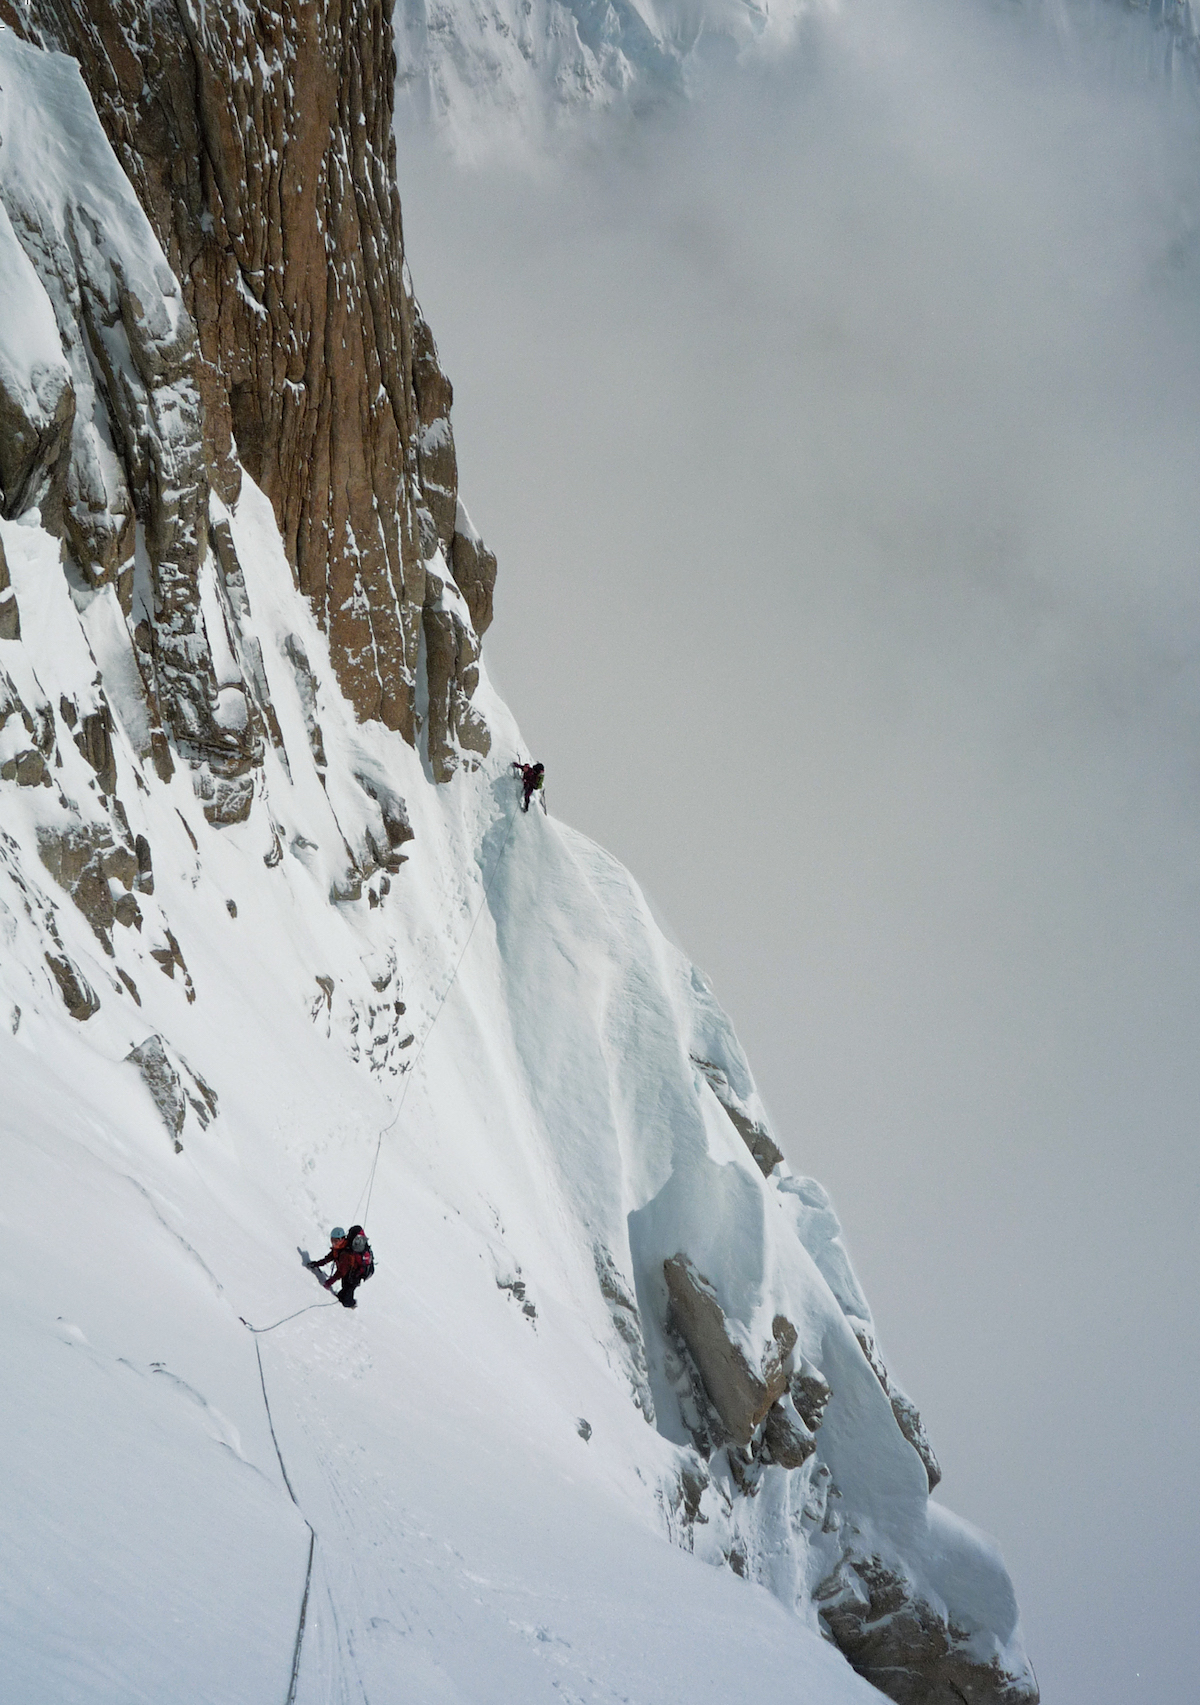 Ichimura (left) and Sato follow the upper section of the first rockband on Denali's Isis Face. The climbers simulclimbed the entire route in three days, one of which was spent in a snow cave waiting out a storm. [Photo] Katsutaka Yokoyama